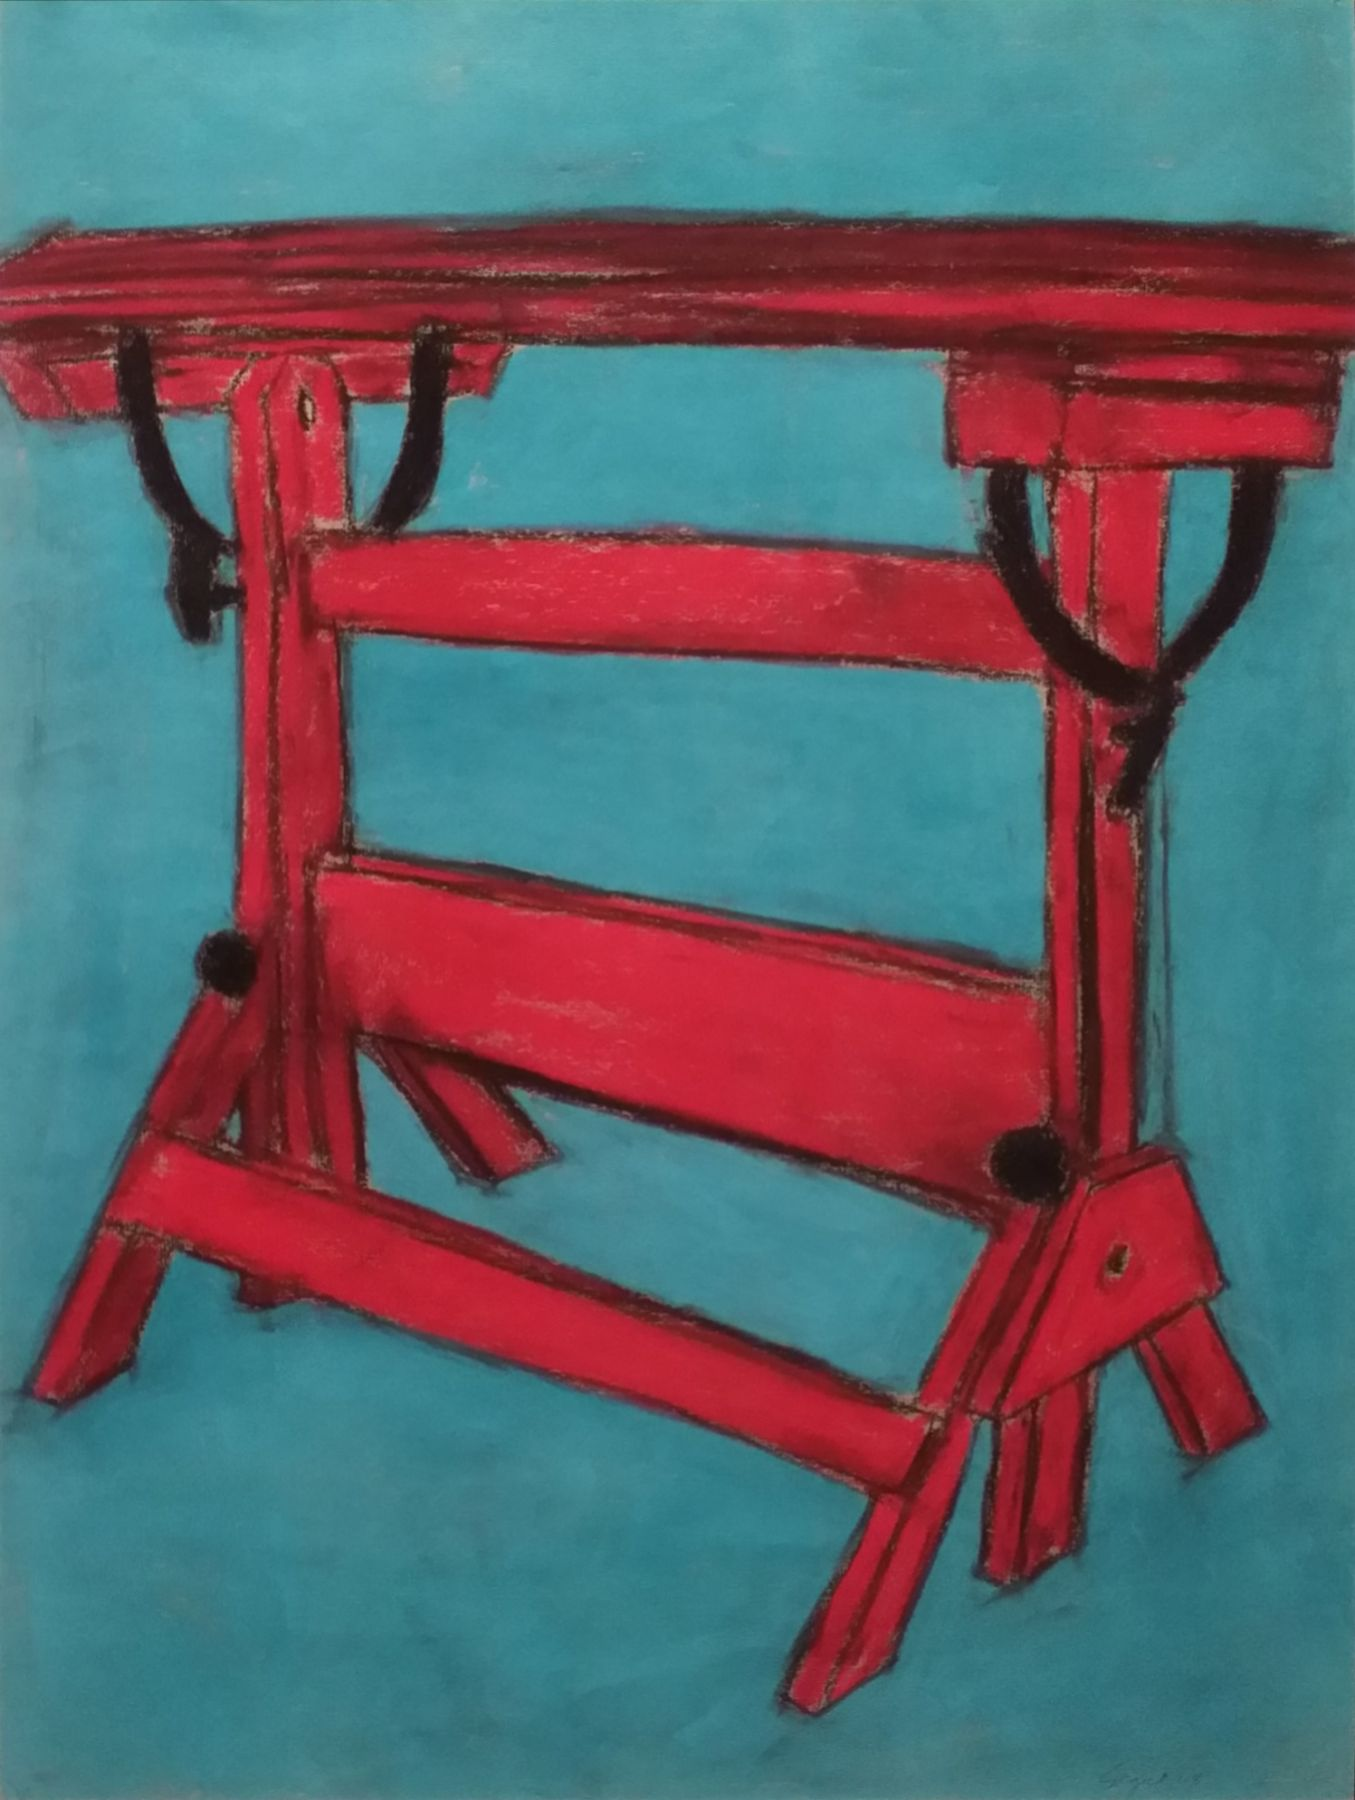 George Segal, Untitled (Drawing Table), 1968, Pastel on paper 19 x 25 inches